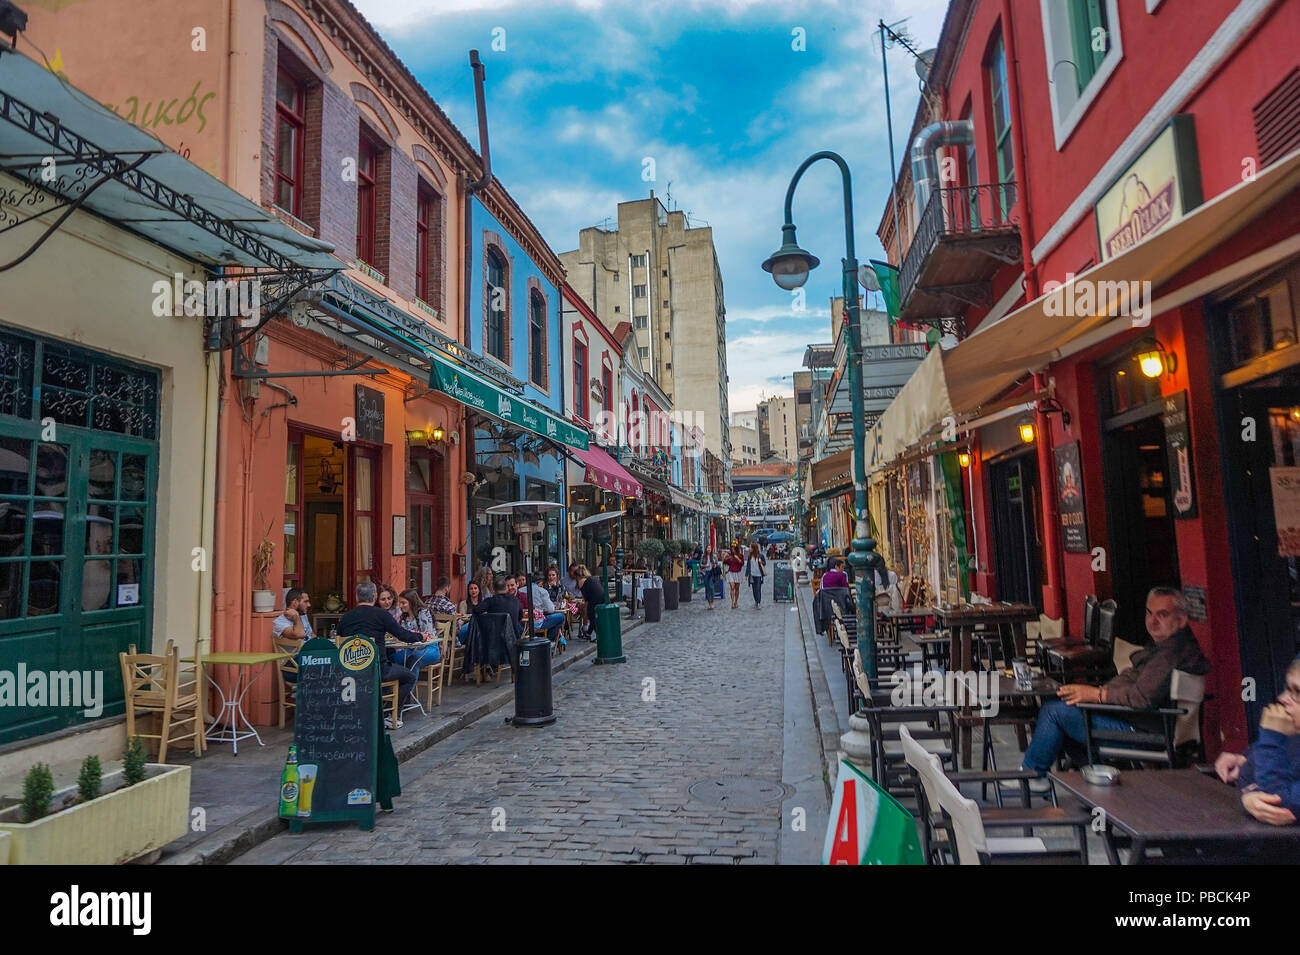 Ladadika is a popular much visited city area with local bars and traditional taverns. Ladadika means the shops that sell oil and its derivatives. - Stock Image